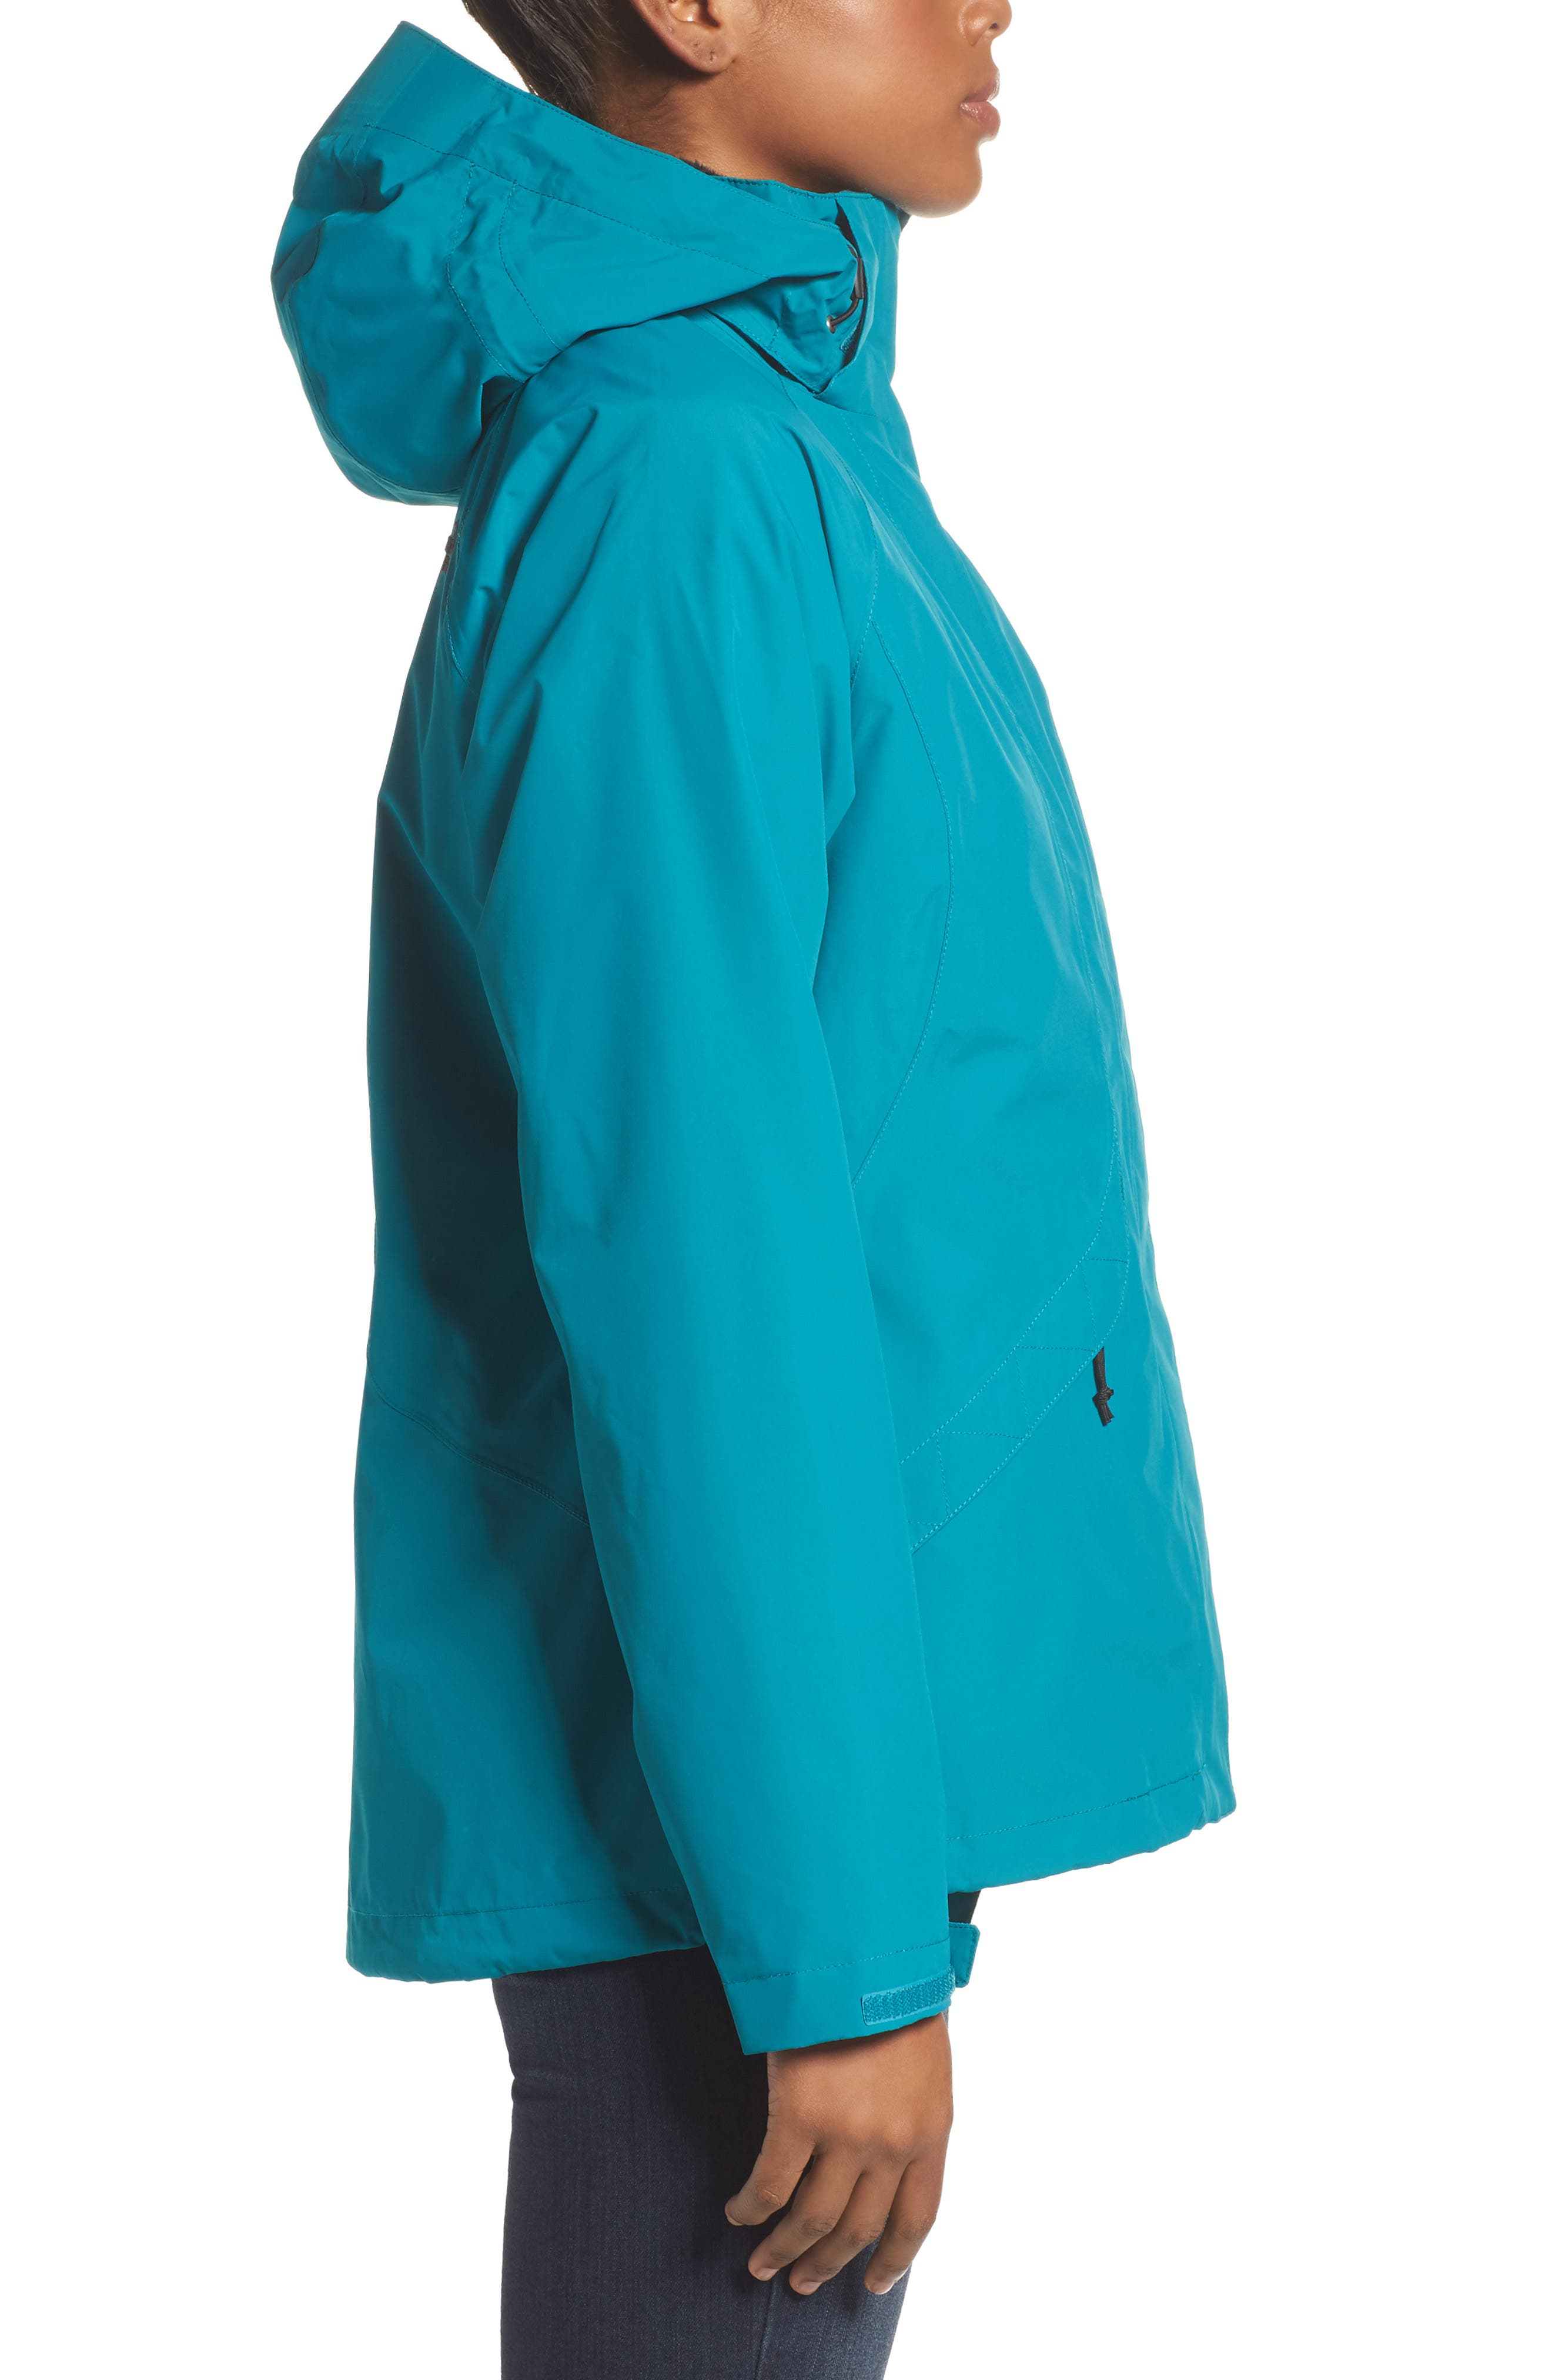 Boundary Triclimate<sup>®</sup> 3-in-1 Jacket,                             Alternate thumbnail 3, color,                             Harbor Blue